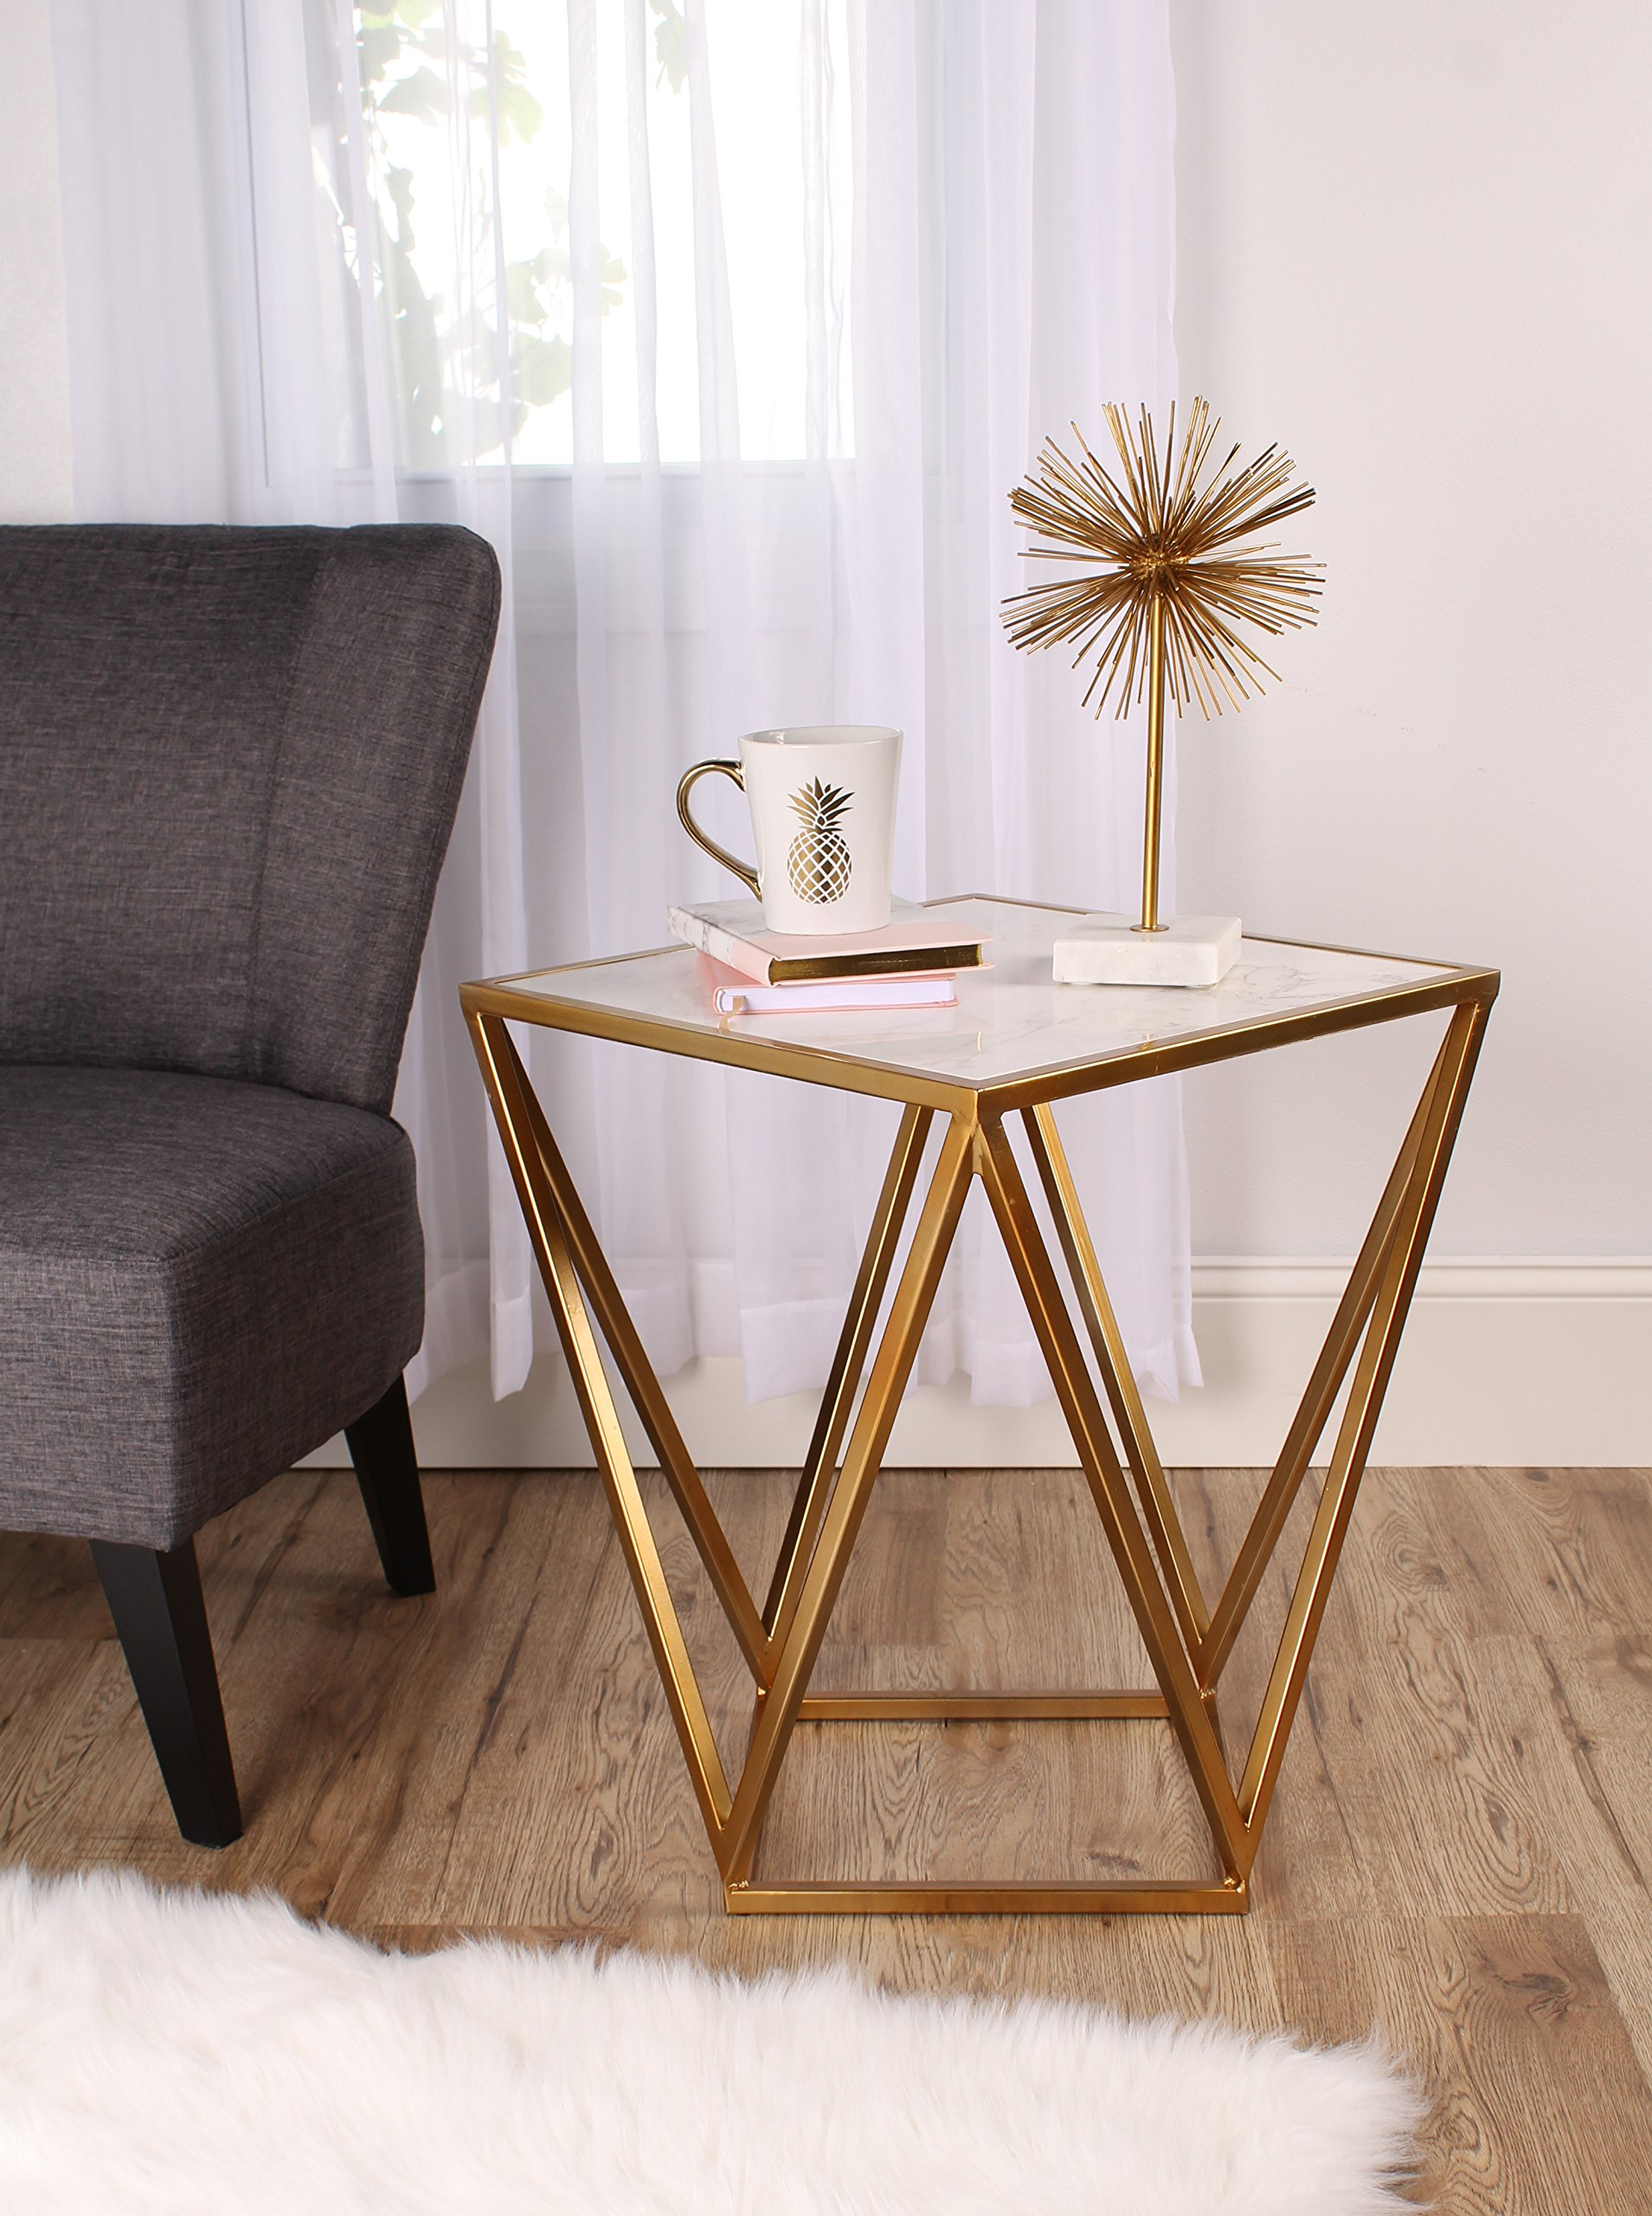 kate and laurel maia metal side accent table with marble top gold cherry wood dining set ikea coffee tables couch jcpenney rugs clearance hampton bay posada outdoor stool high end